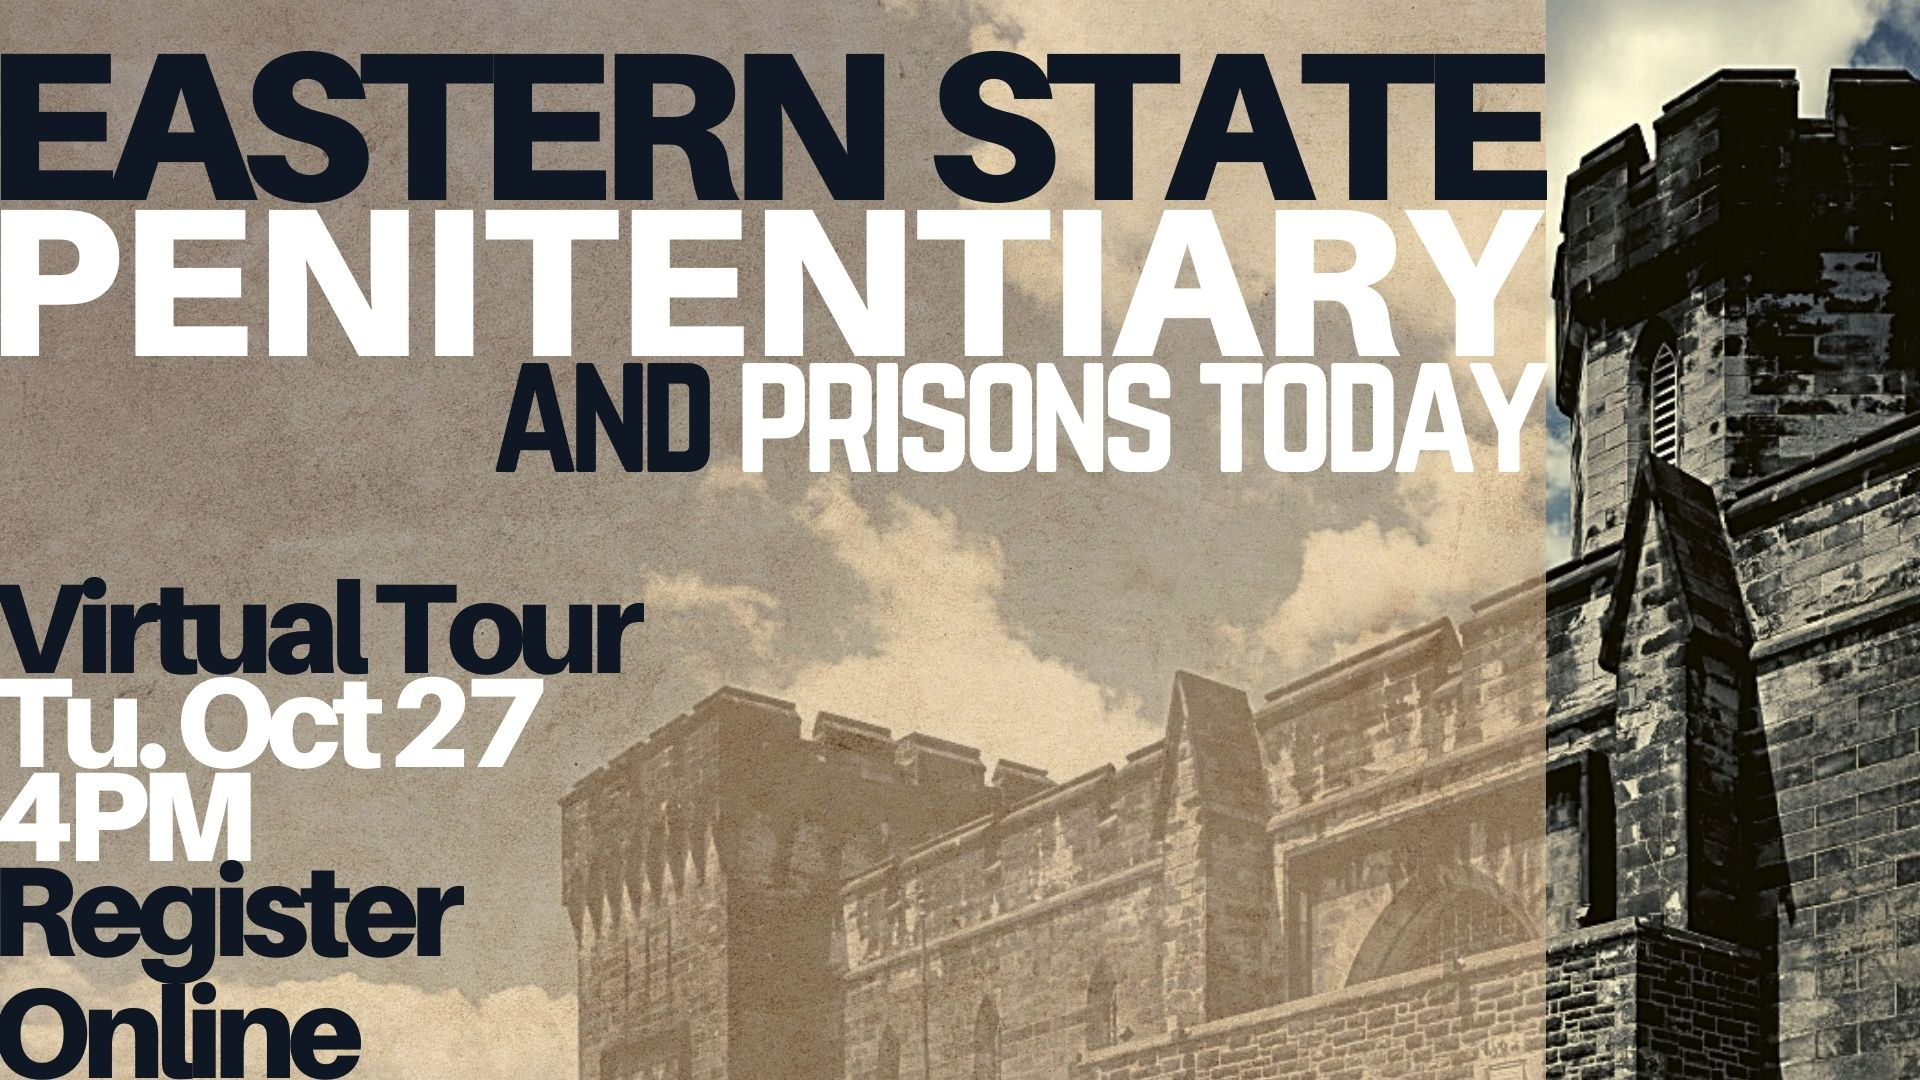 Eastern State Penitentiary and Prisons Today